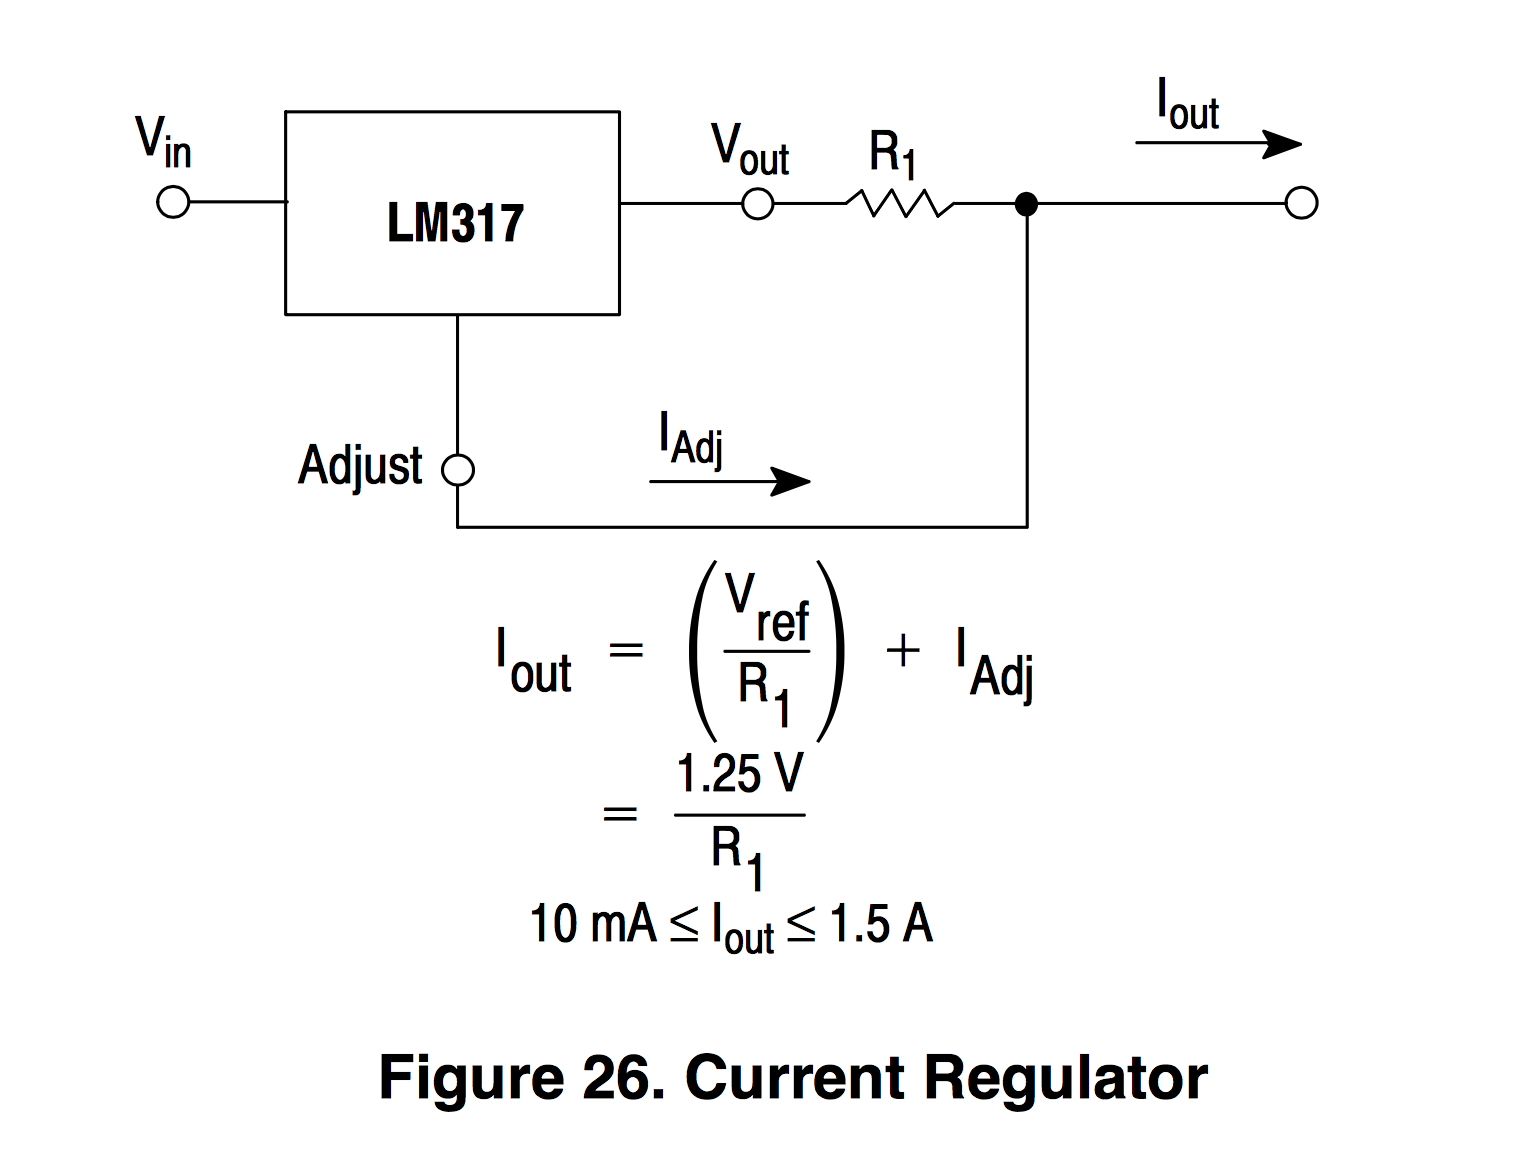 Voltage Regulators Revisted Lm317m 7812 Mcp170x Mic5219 And Icl7660 Divider Network Has The Ability To Generate Different Voltages This Current Regulator Circuit Is Even Simpler Than Using Lm317 As A Which Requires Two Resistors Create